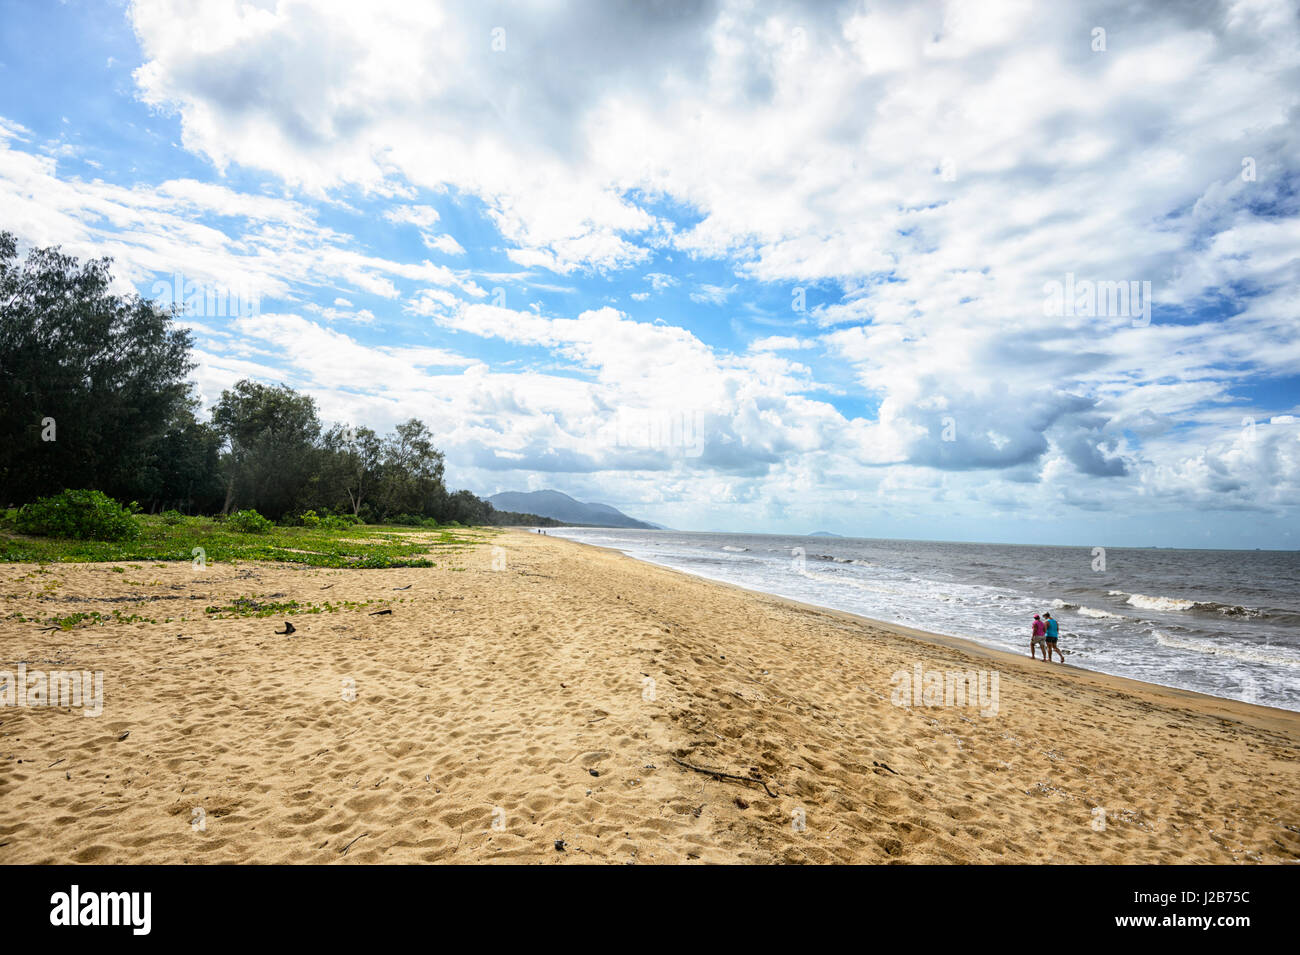 Two persons walking on the beach at Bramston Beach, Far North Queensland, QLD, FNQ, Australia - Stock Image